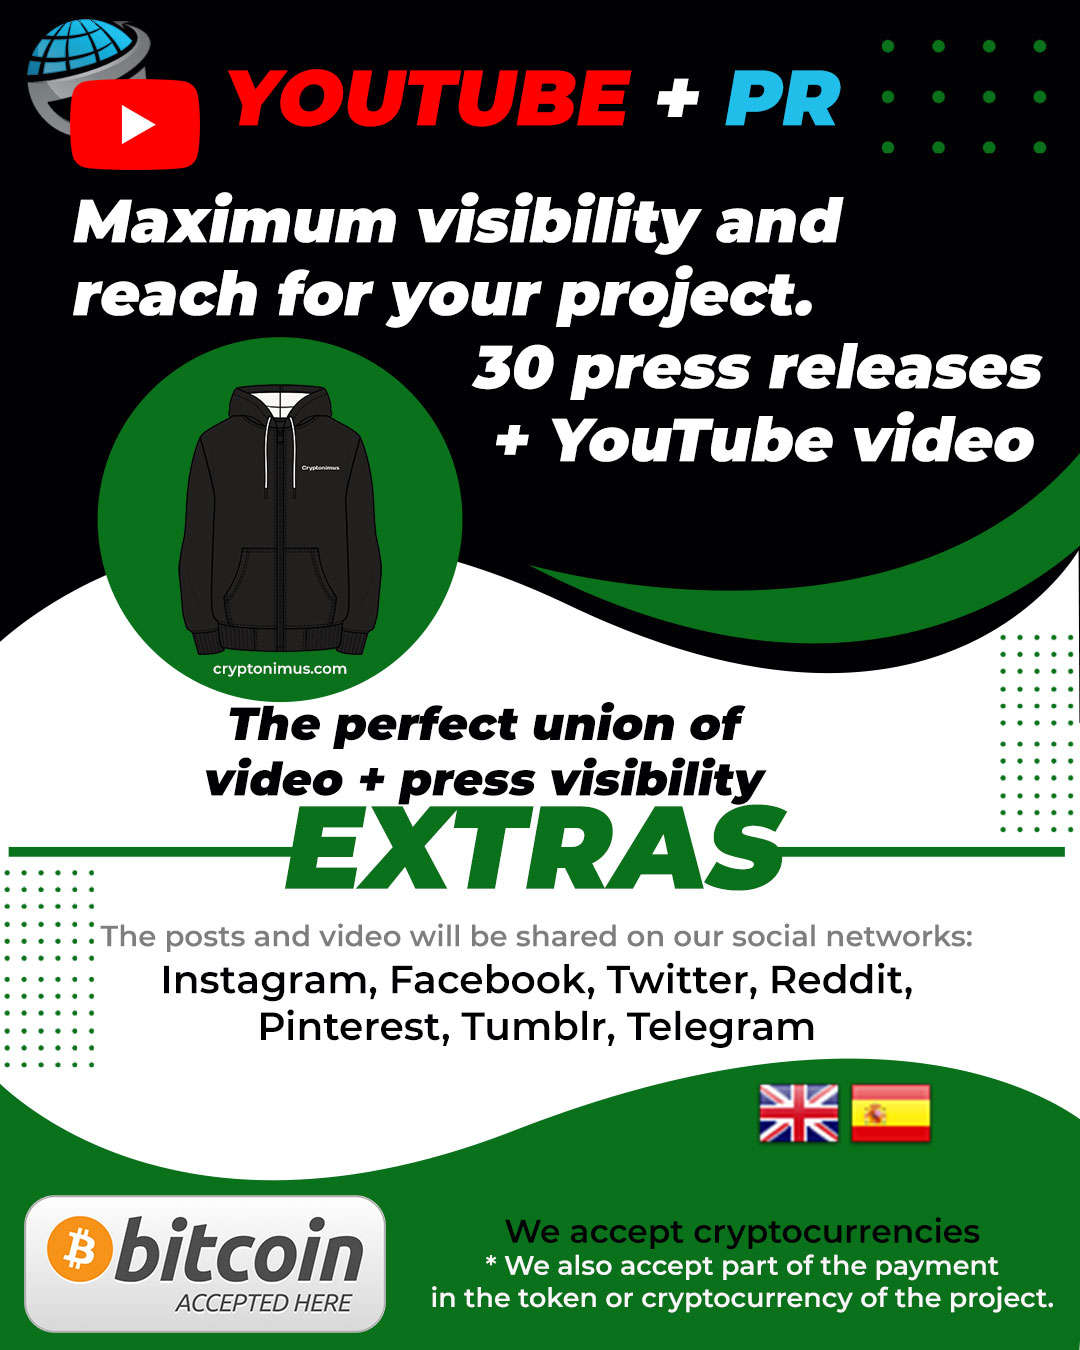 crypto token promo pack youtube and press release cryptonimus advertising